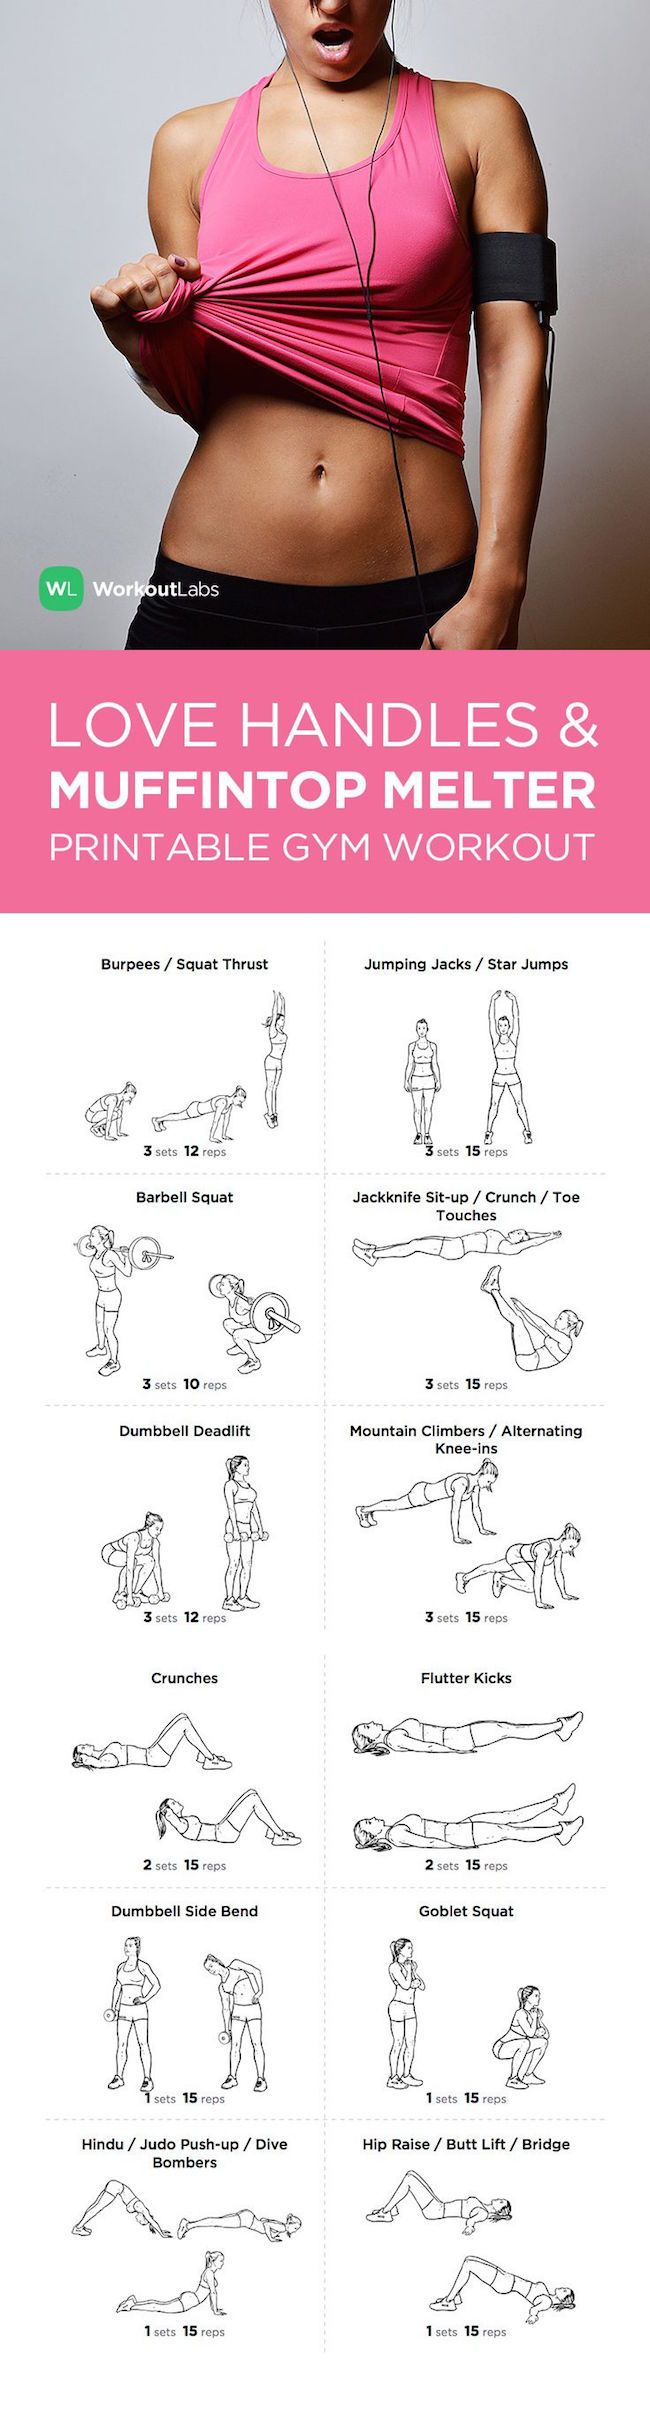 The 11 Best Muffin Top Exercises - What is a muffin top? It's the annoying belly bulge that hangs out on top of the pants after they are zipped up.